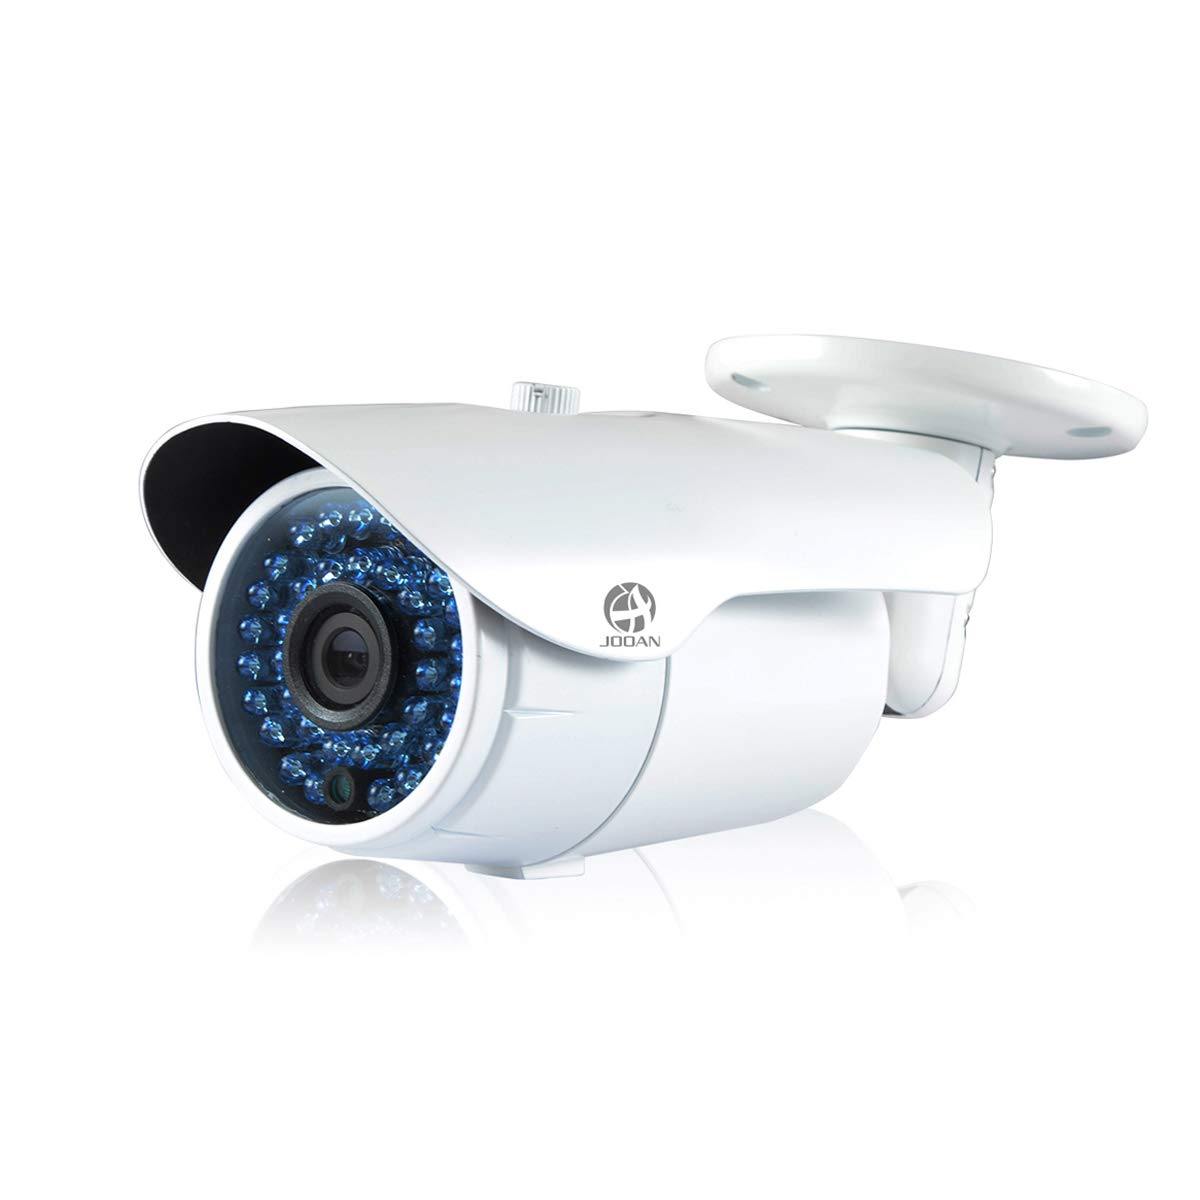 JOOAN 8CH H.264 720P/1080P Security Video Recorder CCTV HD Surveillance Recorder for Security-No Hard Drive JA-7218N